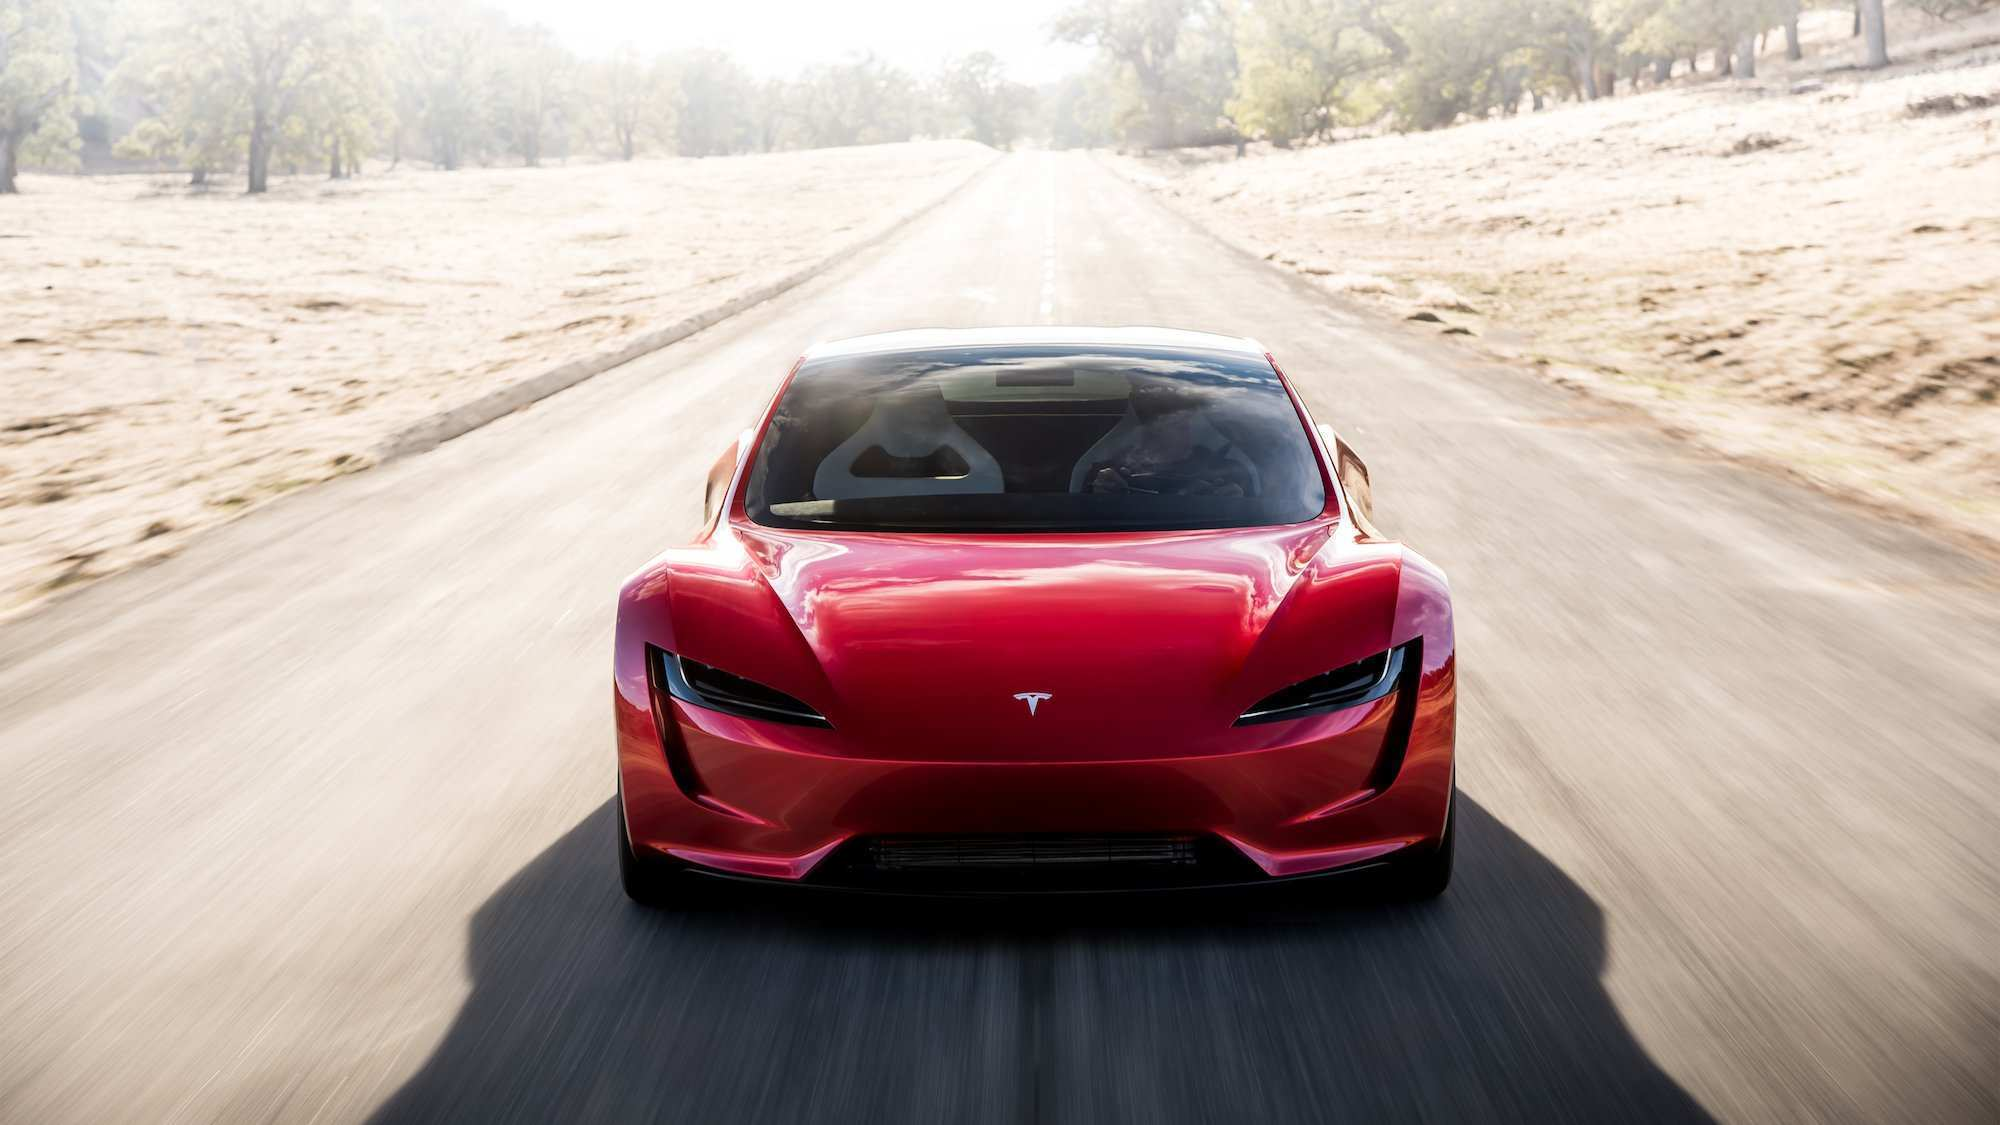 77 New 2020 Tesla Roadster Quarter Mile Redesign with 2020 Tesla Roadster Quarter Mile